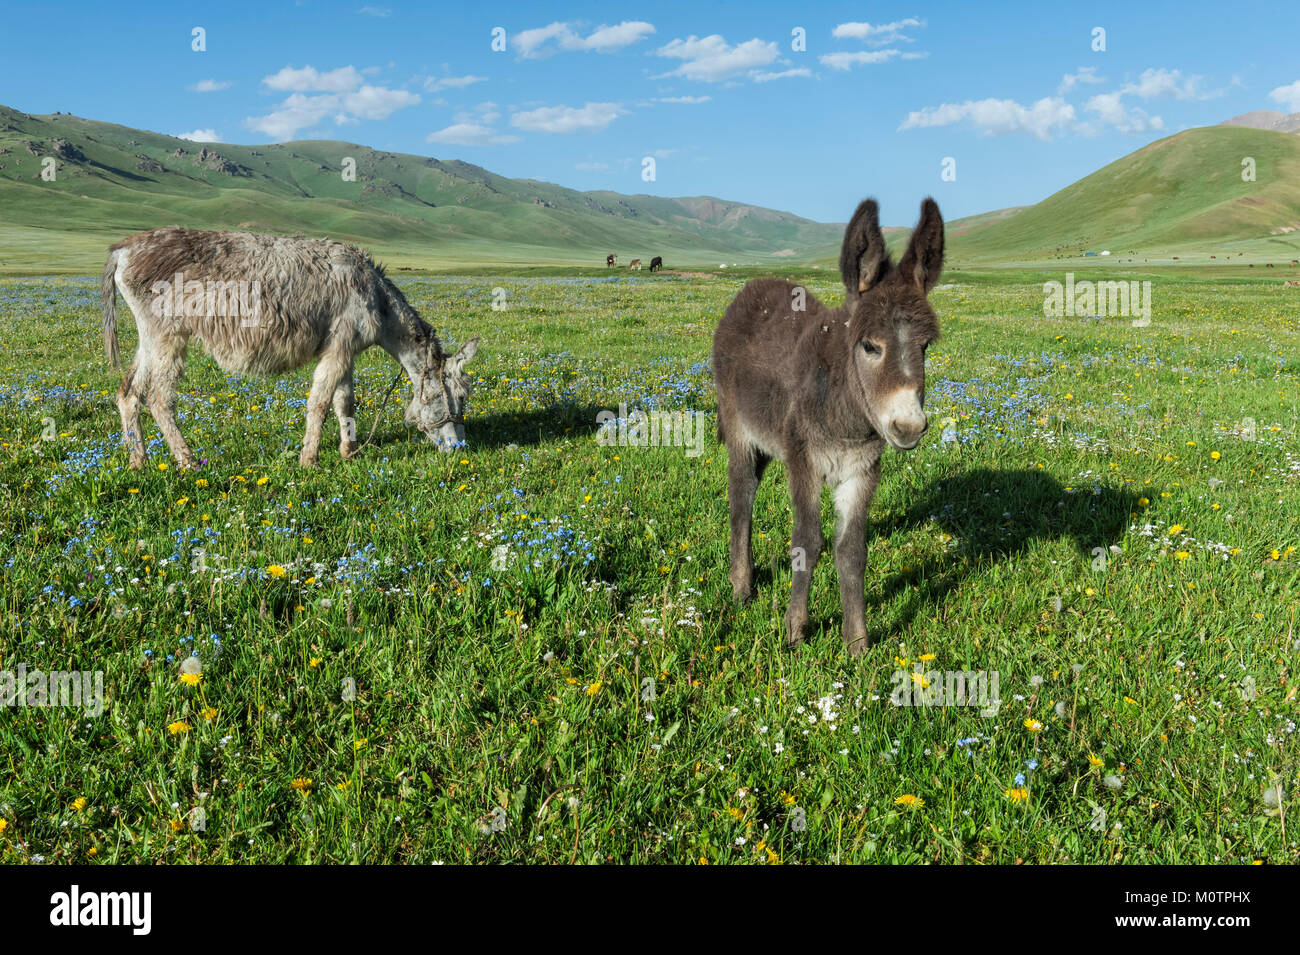 Donkeys, Song Kol Lake, Naryn province, Kyrgyzstan, Central Asia - Stock Image